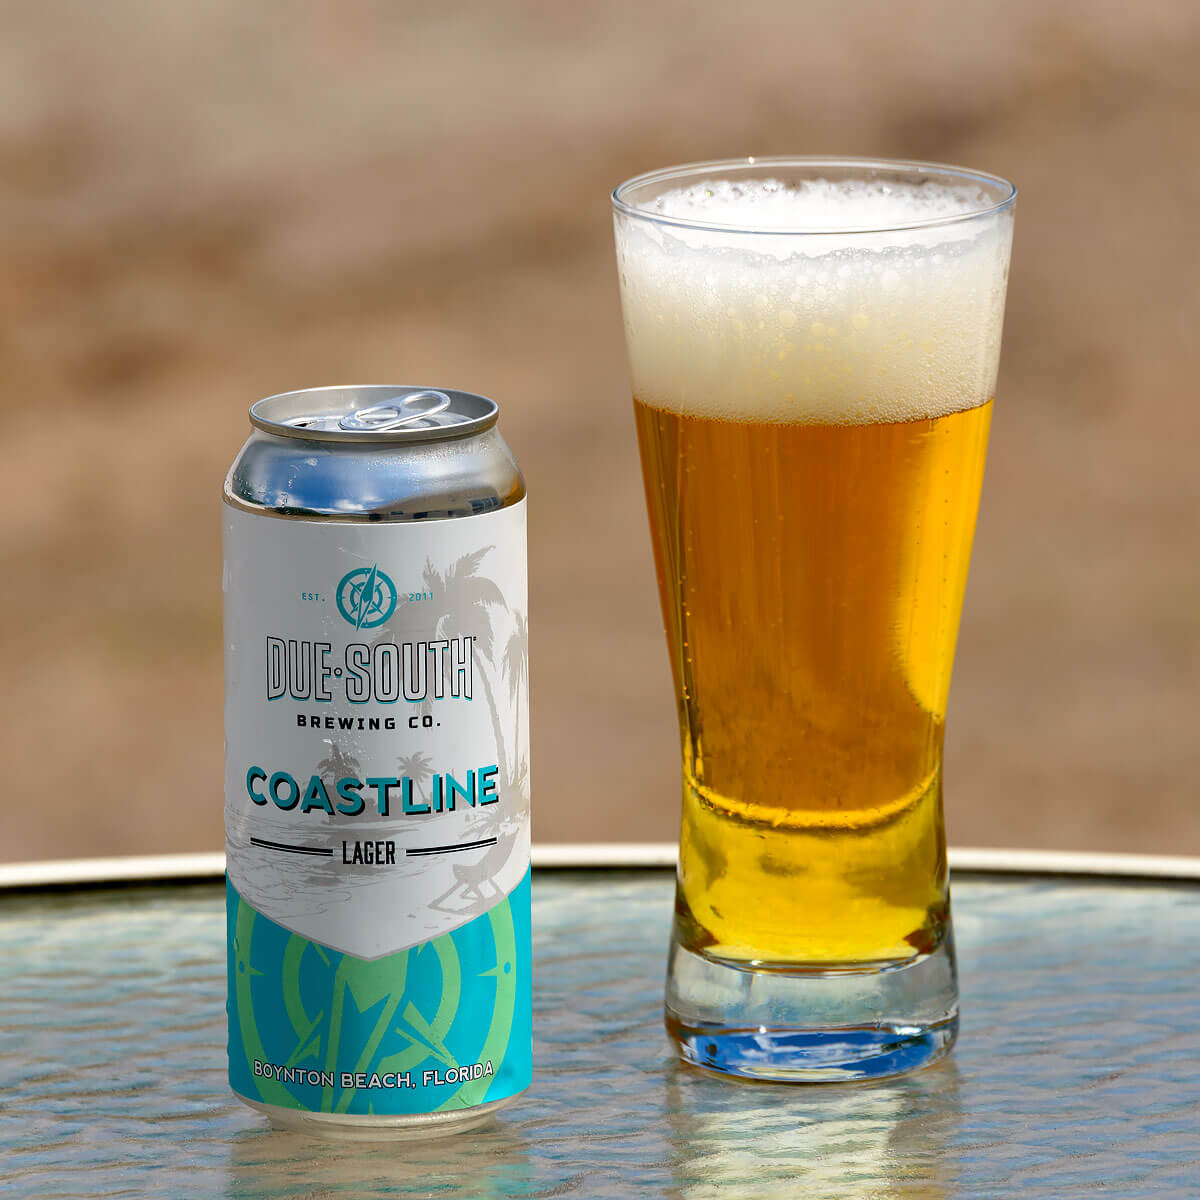 Coastline Lager, an American Pale Lager by Due South Brewing Co.